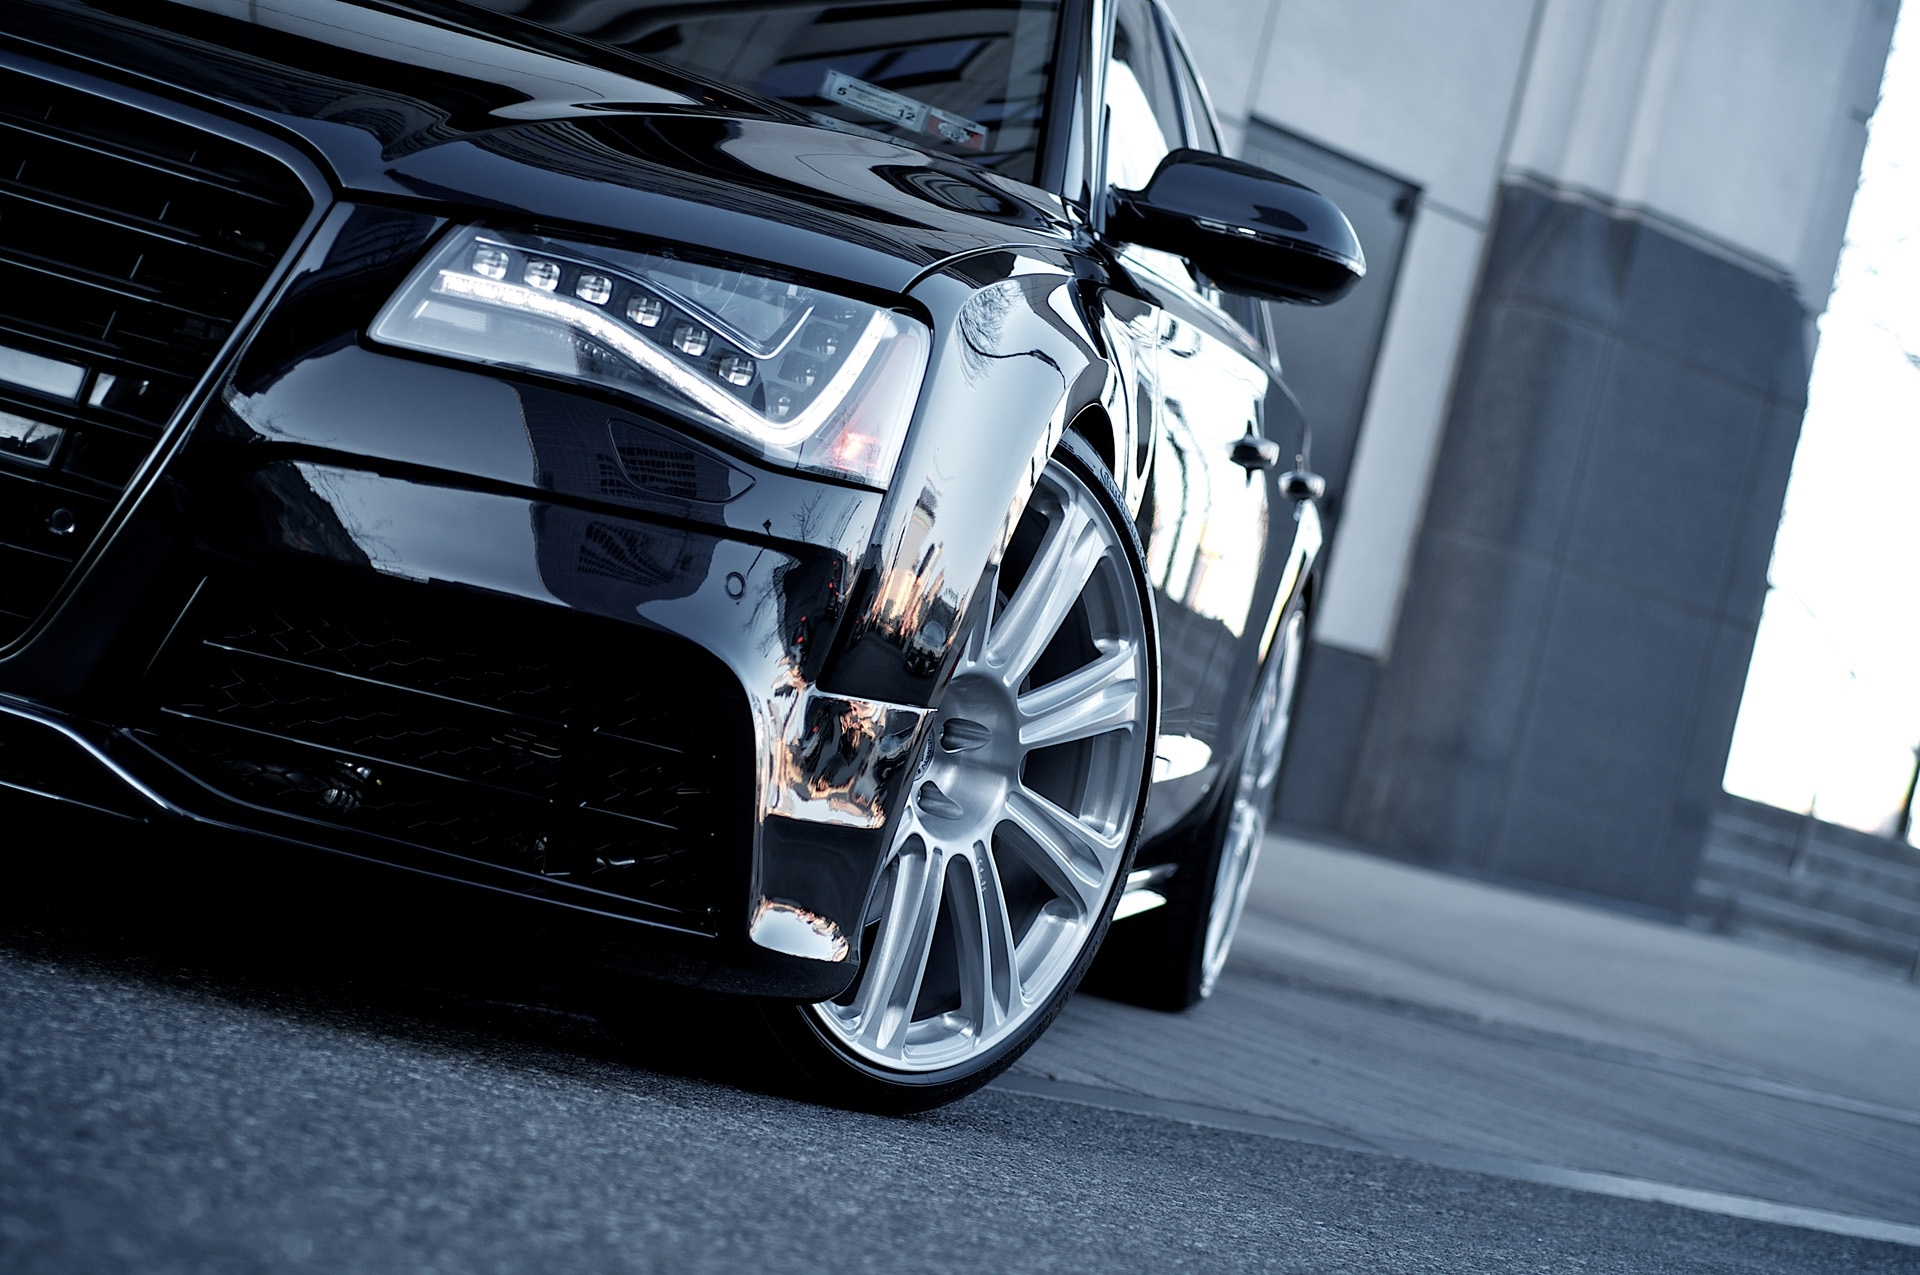 Audi-A8-Black-Car-Tuning-hd-wallpapers-closeup